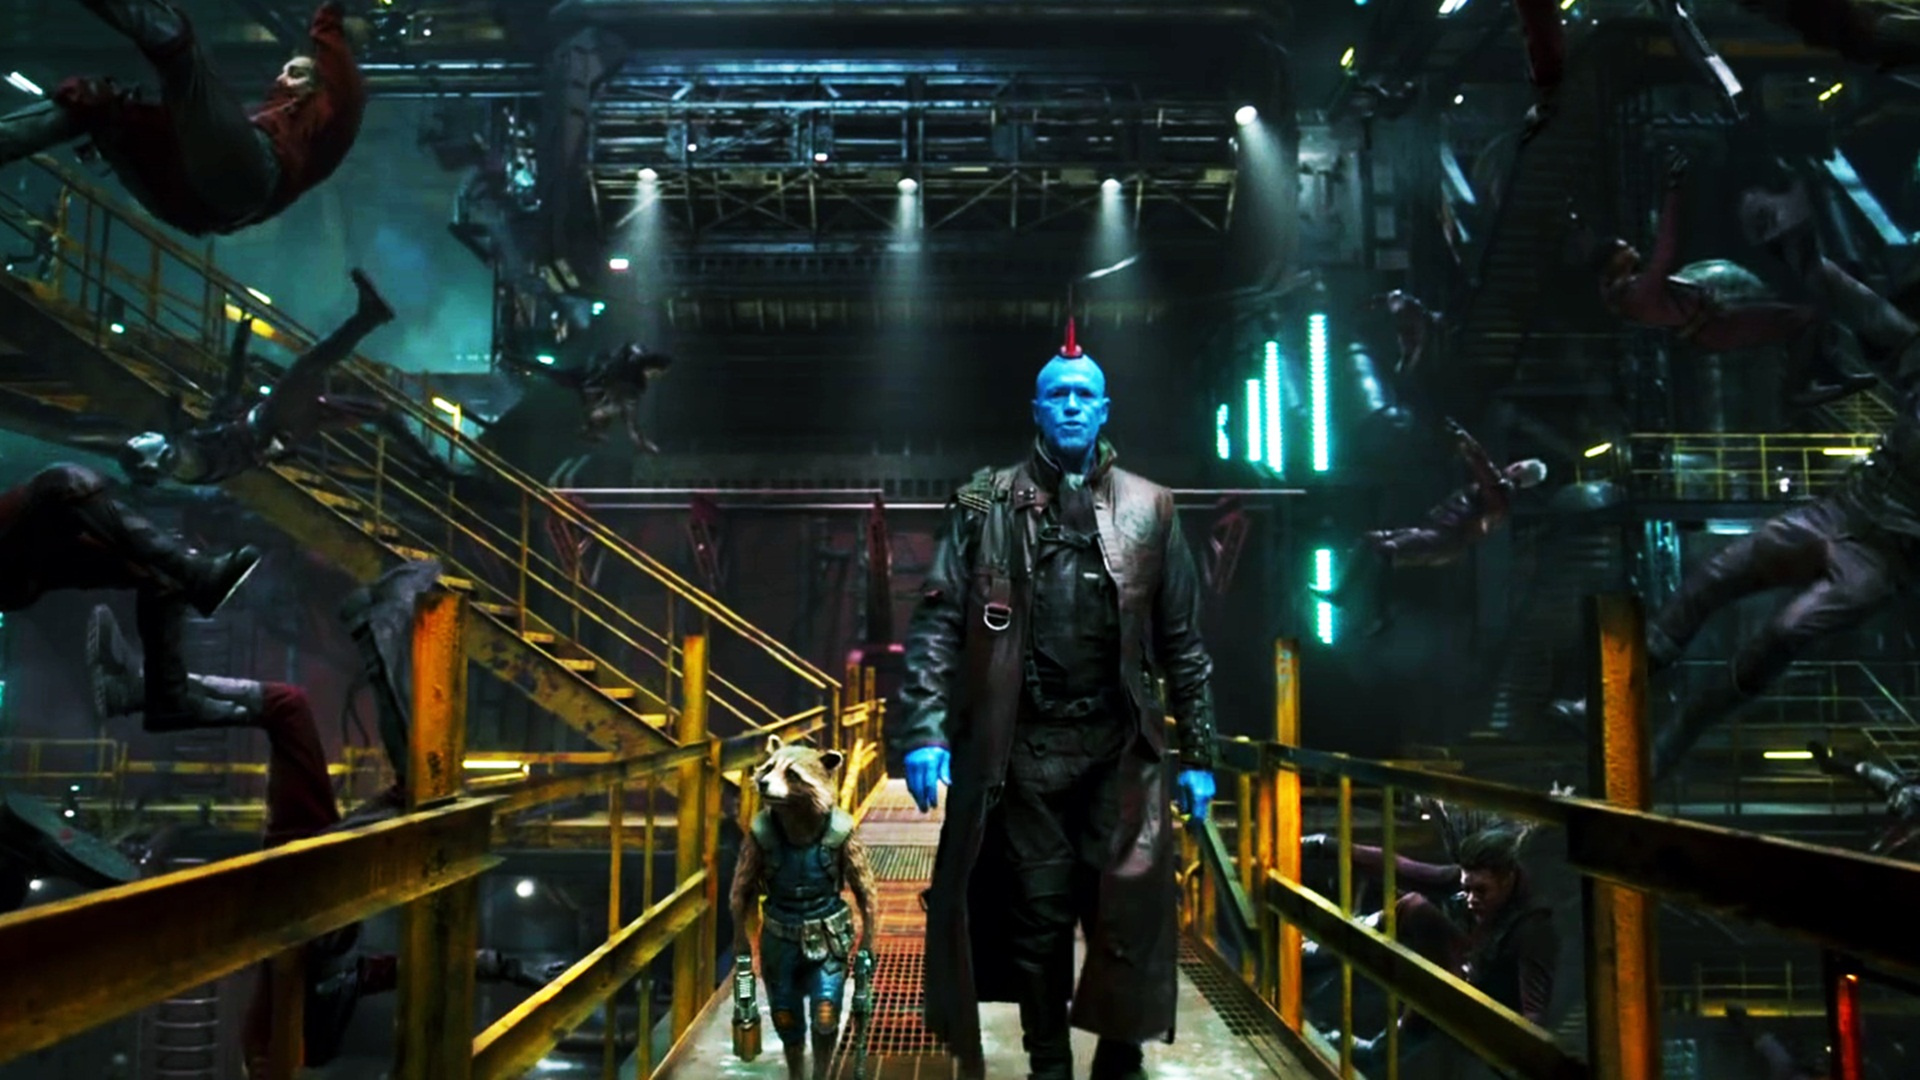 Free Download Guardians Of The Galaxy Vol 2 Hd Wallpaper 11122